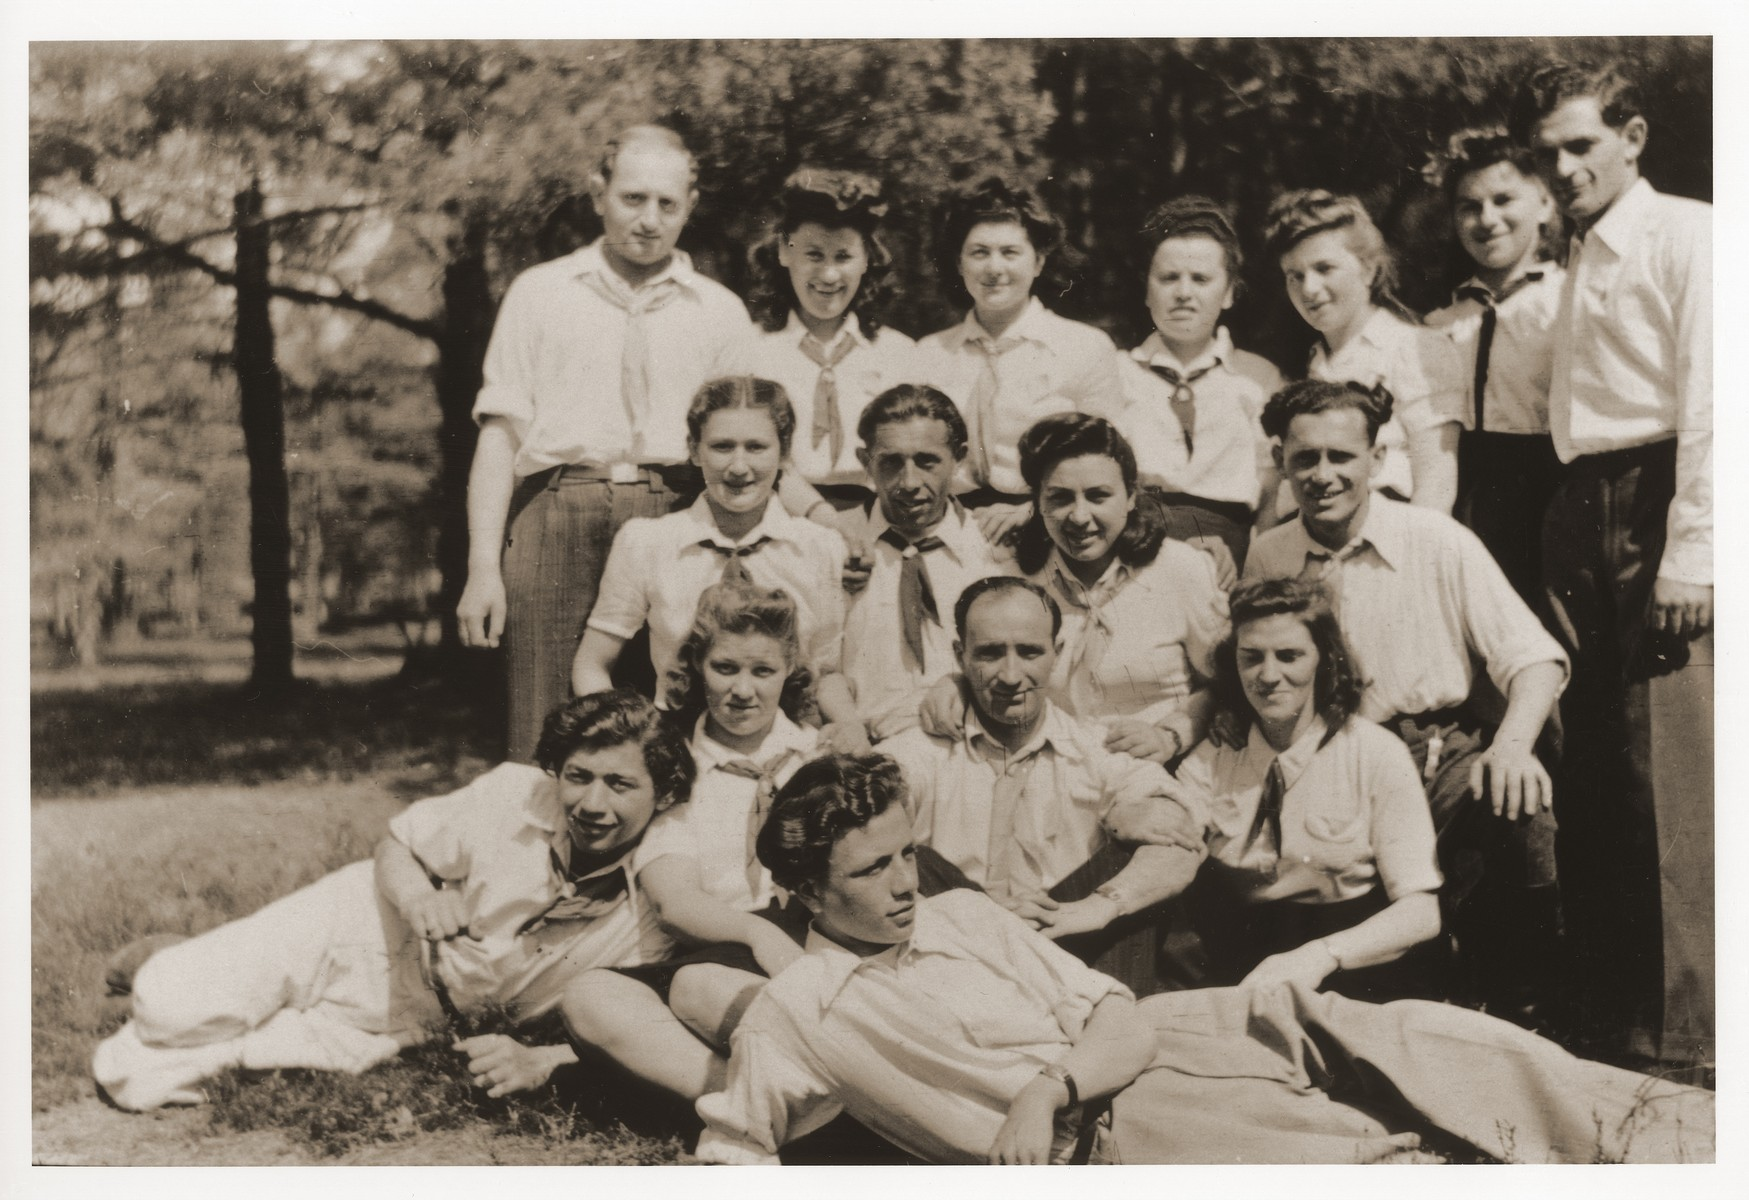 Group portrait of members of Kibbutz Nocham in the Bergen-Belsen displaced persons camp.  Szaja Aron Knobler (now Alex Knobler) is the son of Moszek and Jocheta Knobler.  He was born in 1921 in Bedzin, Poland.  Szaja had three older sisters, Ita, Esther and Leah.  In 1931 the family moved to Chorzow near the German border.  There Szaja became active in the Akiba Zionist youth movement.  In 1938 he joined the Akiba hachshara [agricultural training farm] in Bielsko and made plans to immigrate to Palestine.  His plans were thwarted, however, by the start of World War II.  In the first months of the war Szaja fled to the Soviet sector of Poland, where he explored possible exit routes to Palestine via Romania for the nascent Zionist underground.  During a visit home in 1940 Szaja was caught up in the forced resettlement of his family to the Sosnowiec ghetto.  From Sosnowiec Szaja was deported to the Blechhammer labor camp, where he remained until the camp was evacuated in January 1945.  During the forced march out of the camp Szaja ran away with two friends.  German guards shot and killed his friends but Szaja escaped.  Posing as a Polish laborer, Szaja found refuge with a German farmer in Gleiwitz until liberation.  After the war Szaja, who was the sole survivor of his immediate family, took a leading role in the setting up of Zionist collectives in Poland.  He also was active in the Bricha and Aliyah Bet [illegal immigration to Palestine] movement.  This activity led to his arrest in Sosnowiec by the NKVD.  Following his release from prison, Szaja left Poland for Germany.  During the summer of 1945 Szaja organized Zionist activities at the Foehrenwald displaced persons camp.  In October he moved on to the Bergen-Belsen DP camp, where he joined a group of 400 would-be immigrants to Palestine.  The group sailed aboard the Tel Hai from Marseilles in March 1946.  When the ship reached Palestine, it was intercepted by the British and its passengers interned for three weeks 